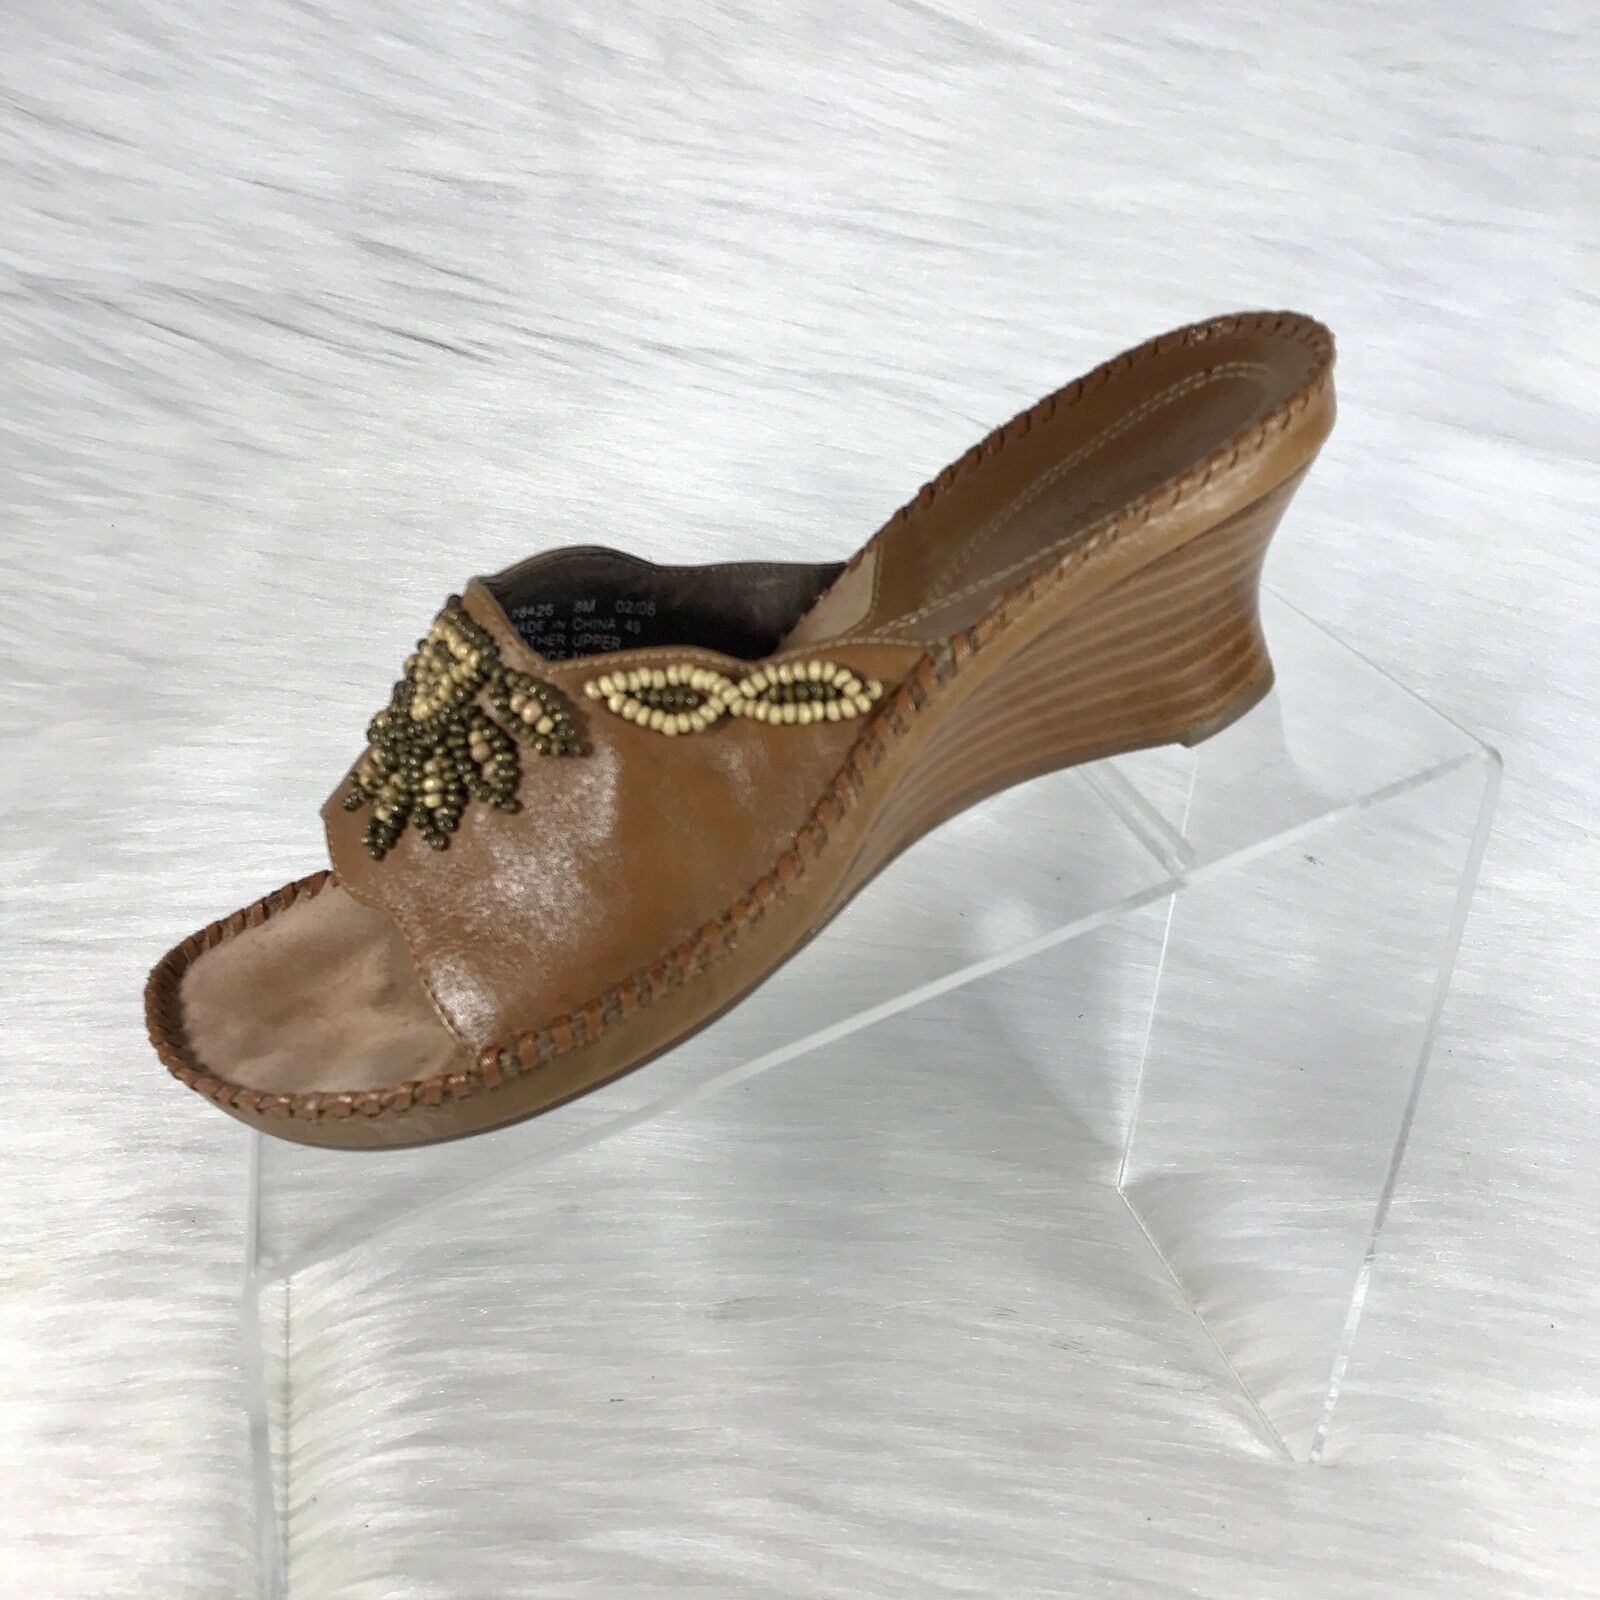 Clarks Artisan Women's Sandals slides Brown Leather Beaded Size 8 M